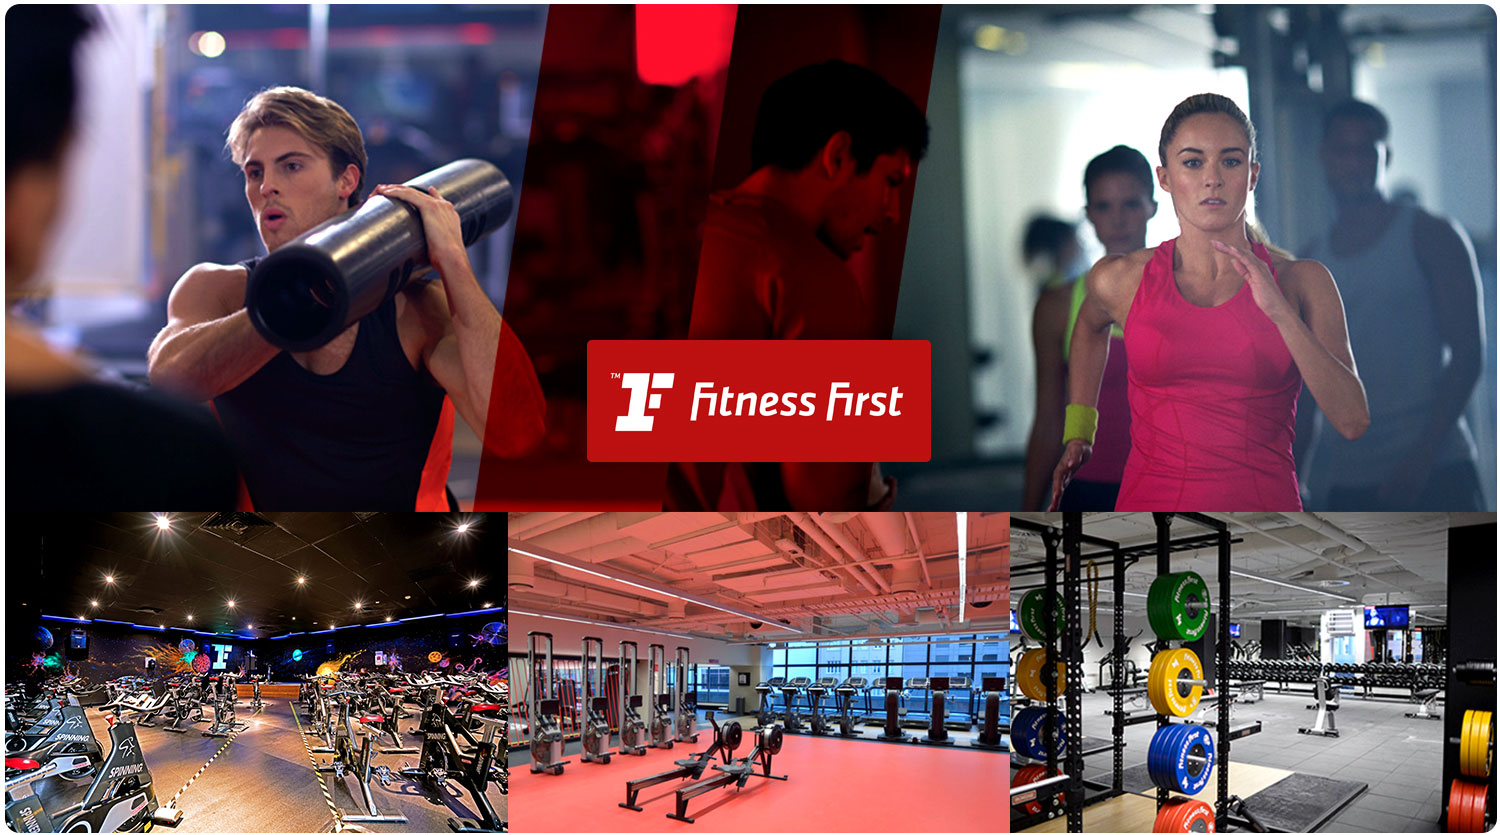 Start your Fitness Journey with Fitness First with only $14.95 for 14 days at Fitness First Newtown NSW. Experience our first class gym and freestyle classes inc. Yoga, HIIT, Les Mills and more. Take the first step with Fitness First Newtown NSW.